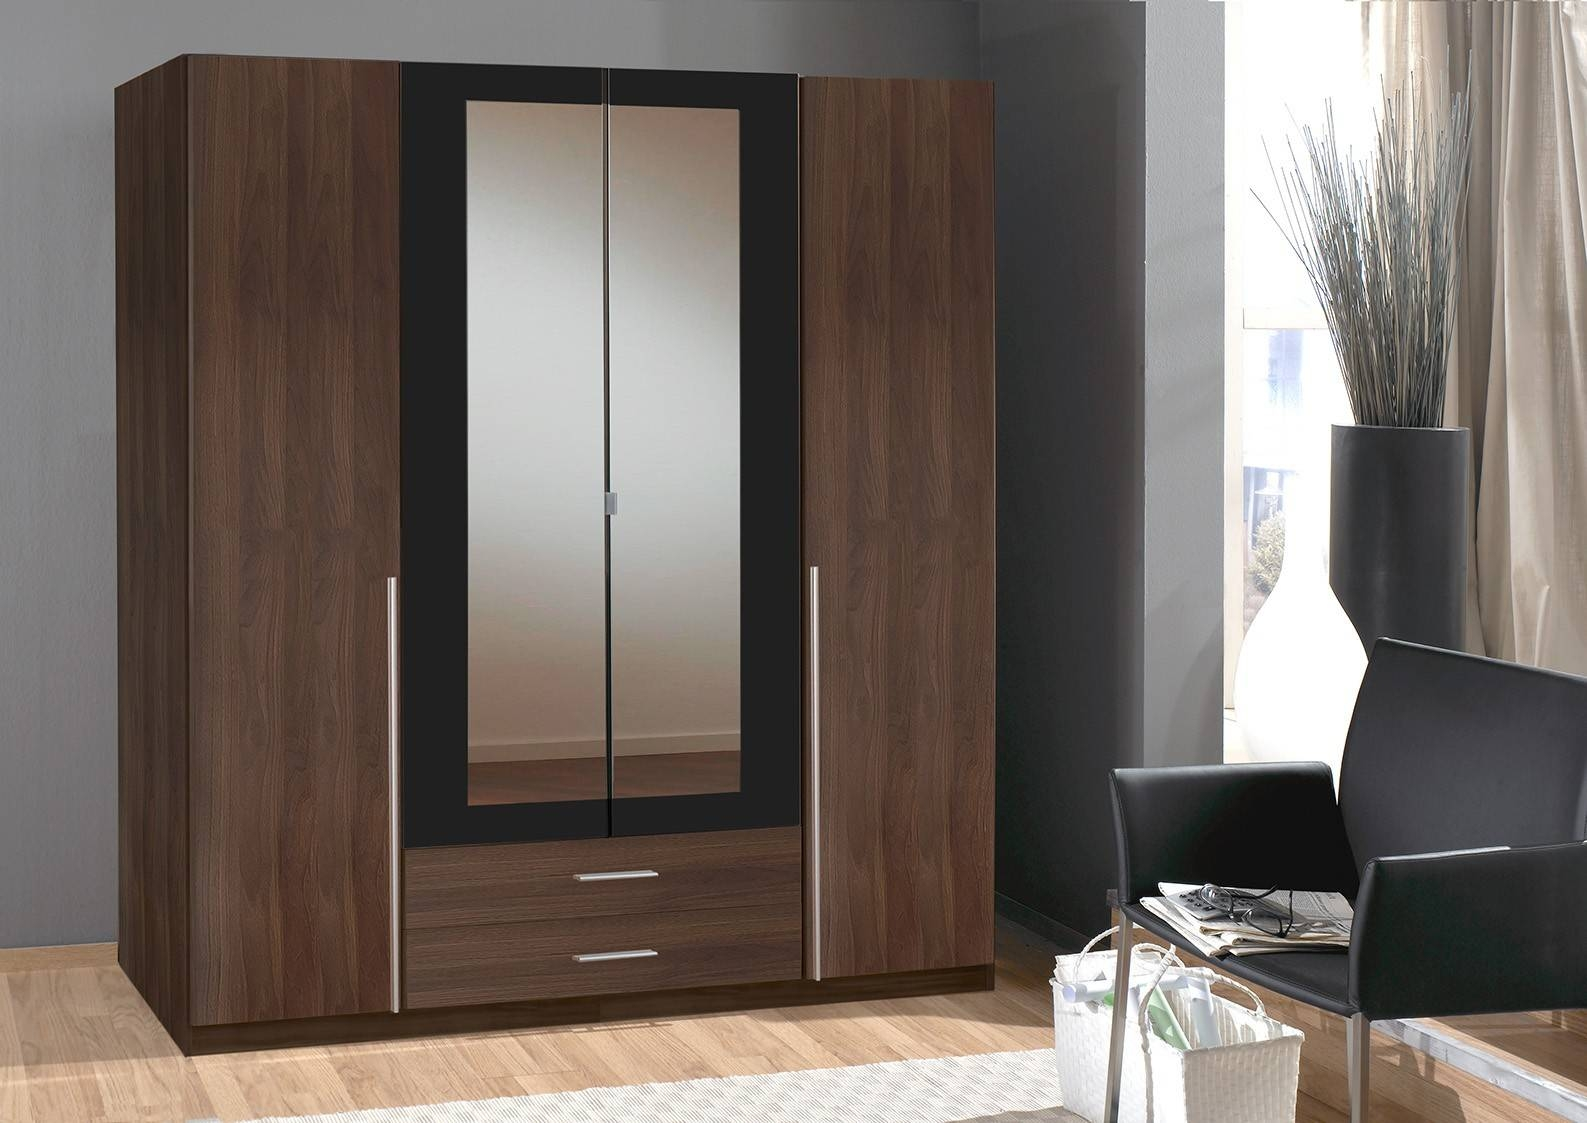 Slumberhaus 'skate' German Made Modern Walnut, Black And Mirror 4 regarding Black Wardrobes With Mirror (Image 14 of 15)